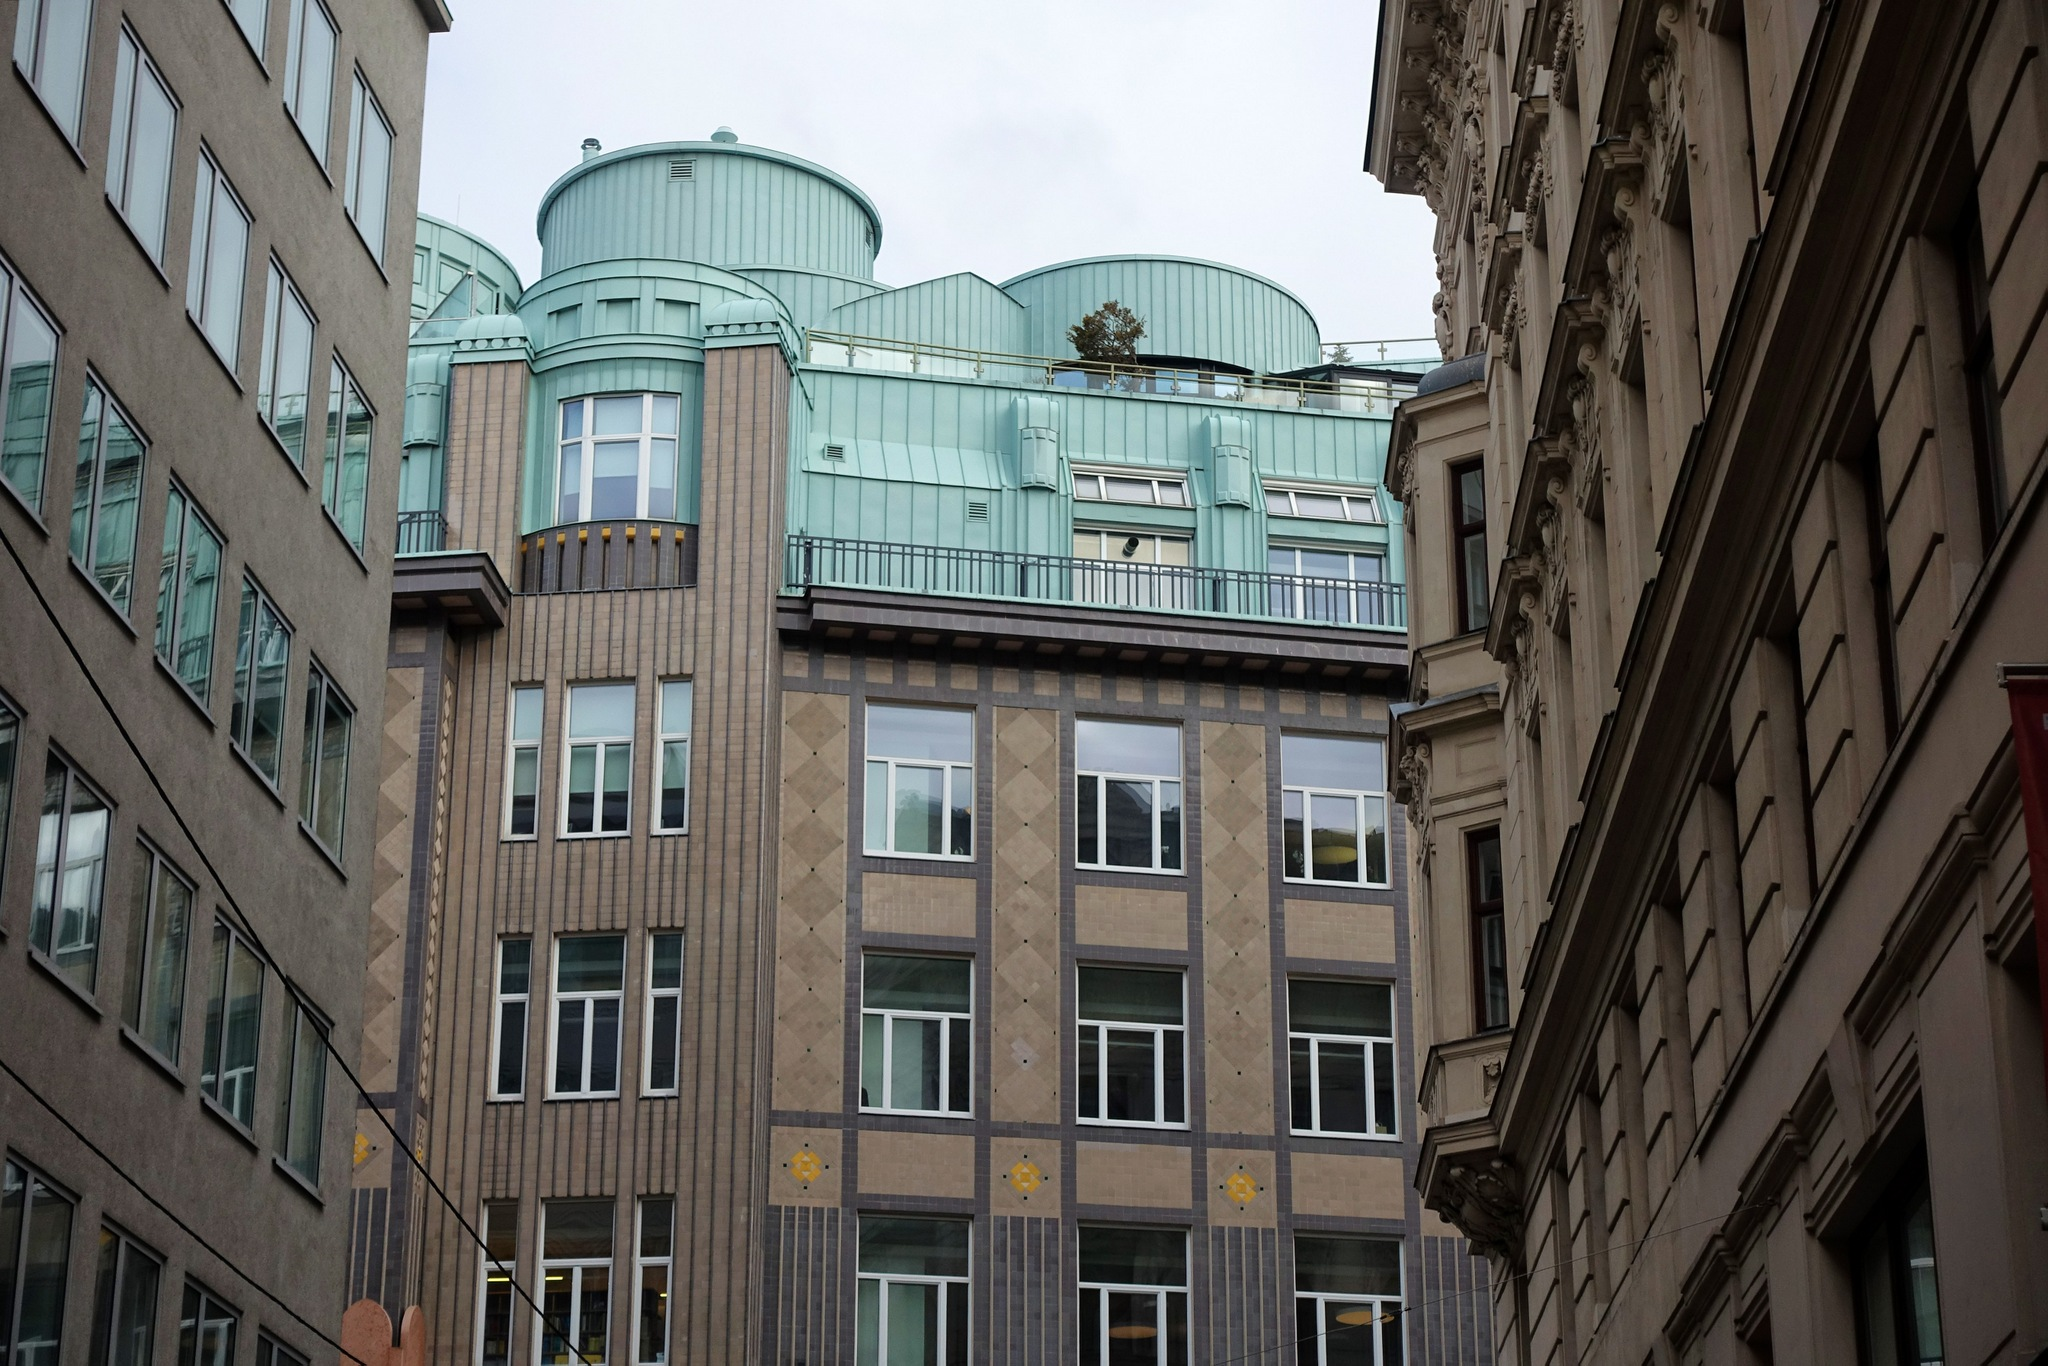 Photo in Architecture #roof #architecture #building #art nouveau #jugendstil #cityscape